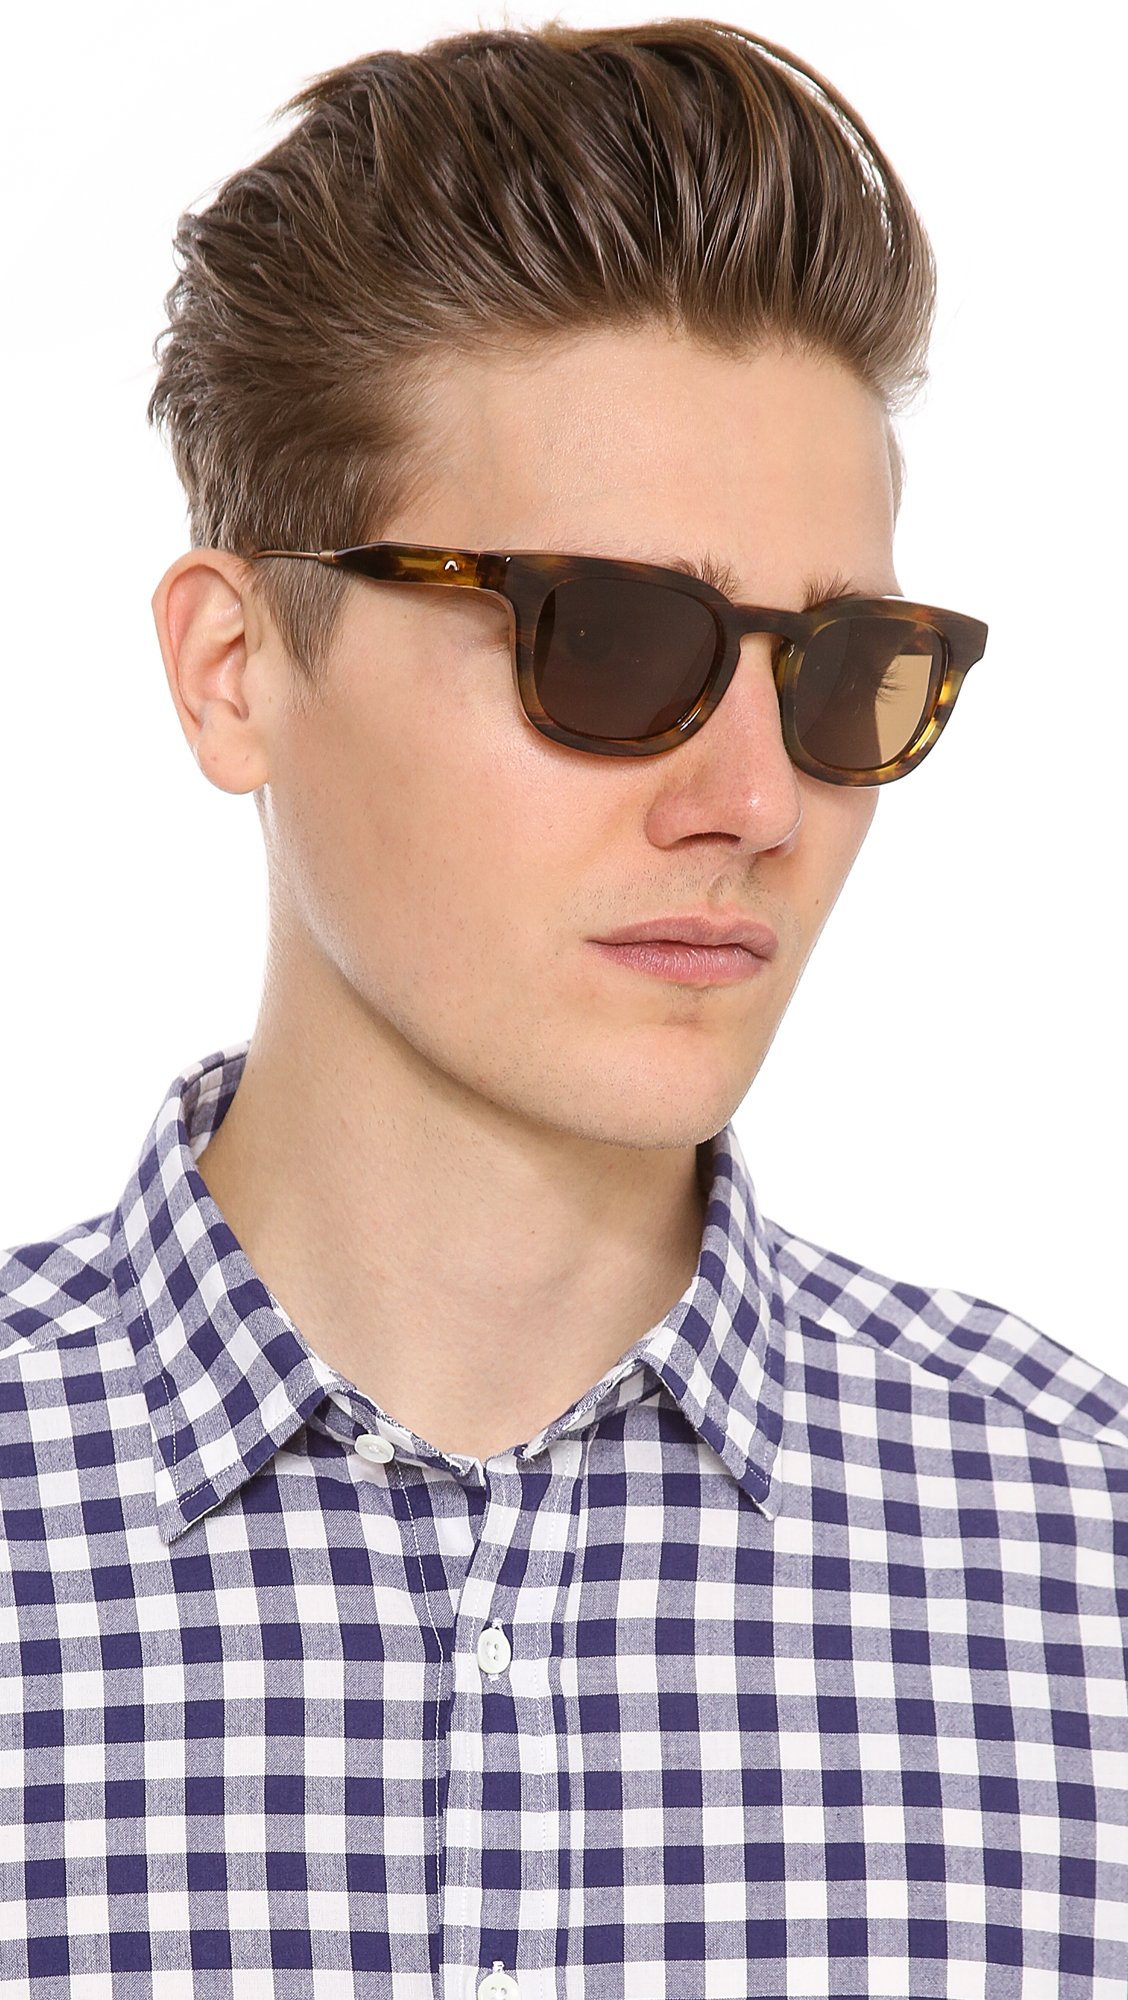 c95ade1baa Lyst - Oliver Peoples Cabrillo Sunglasses in Brown for Men